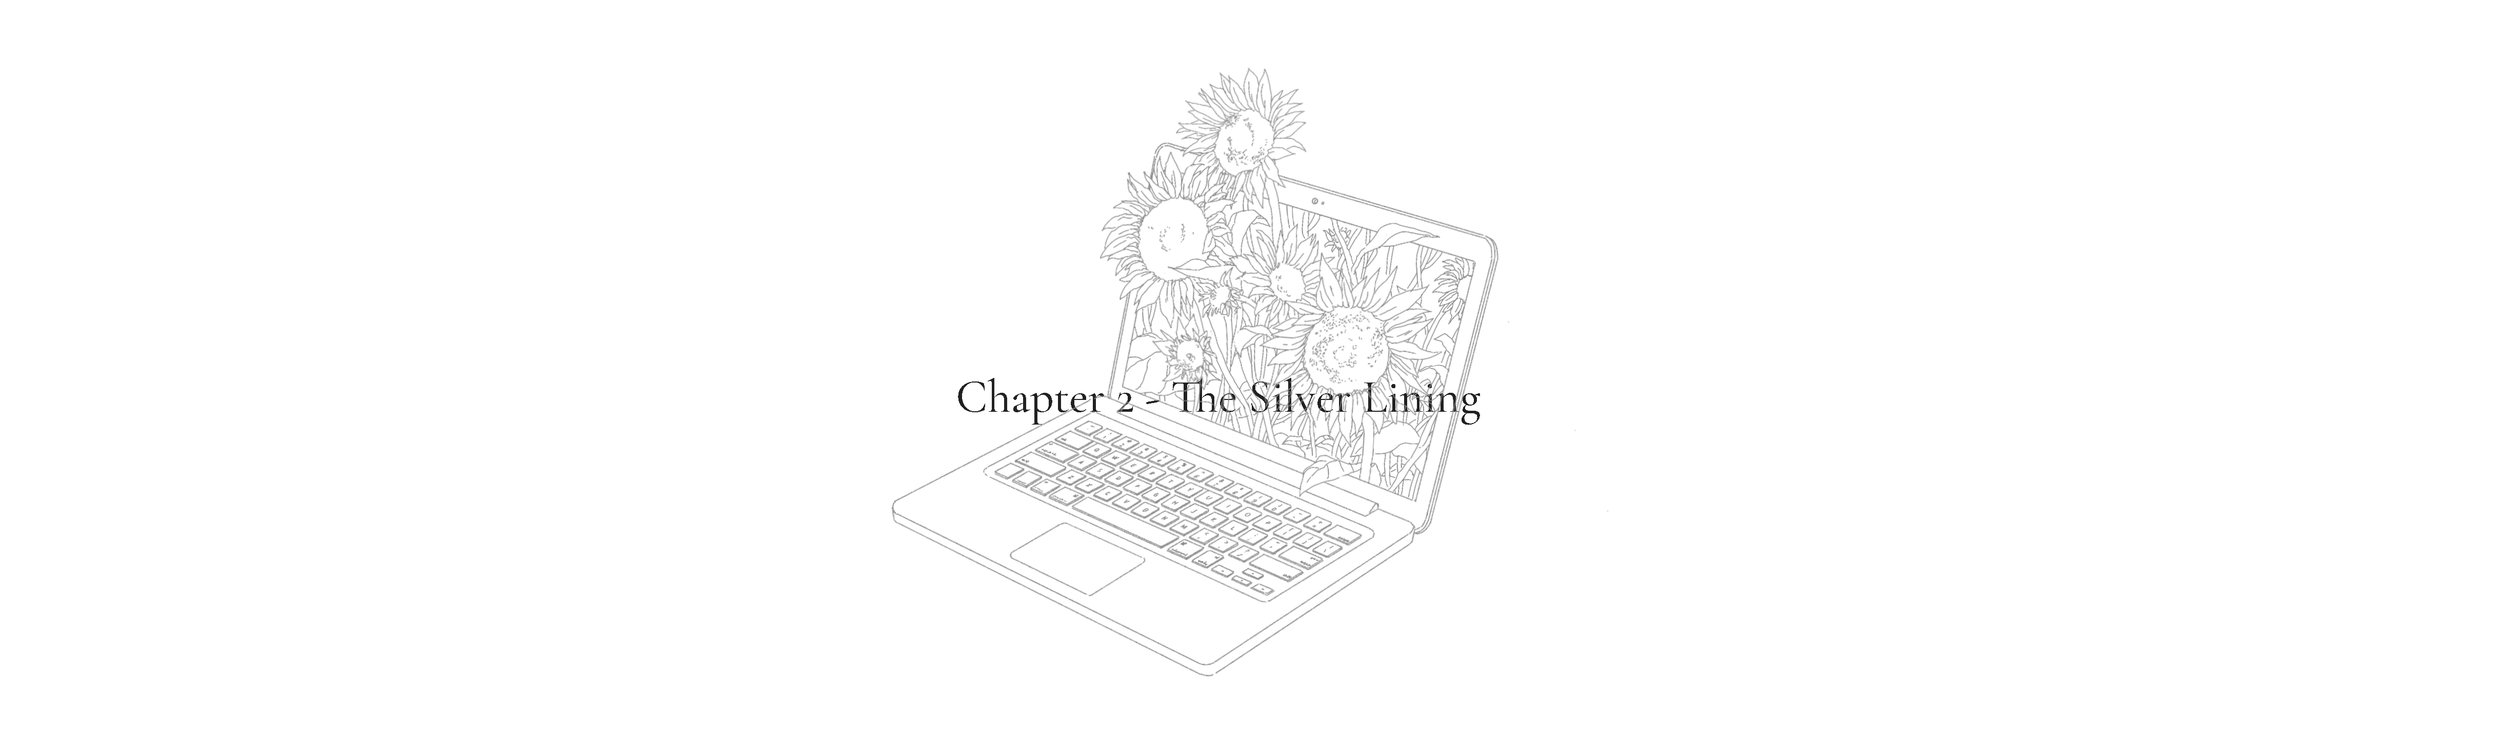 chapter 2 website.jpg